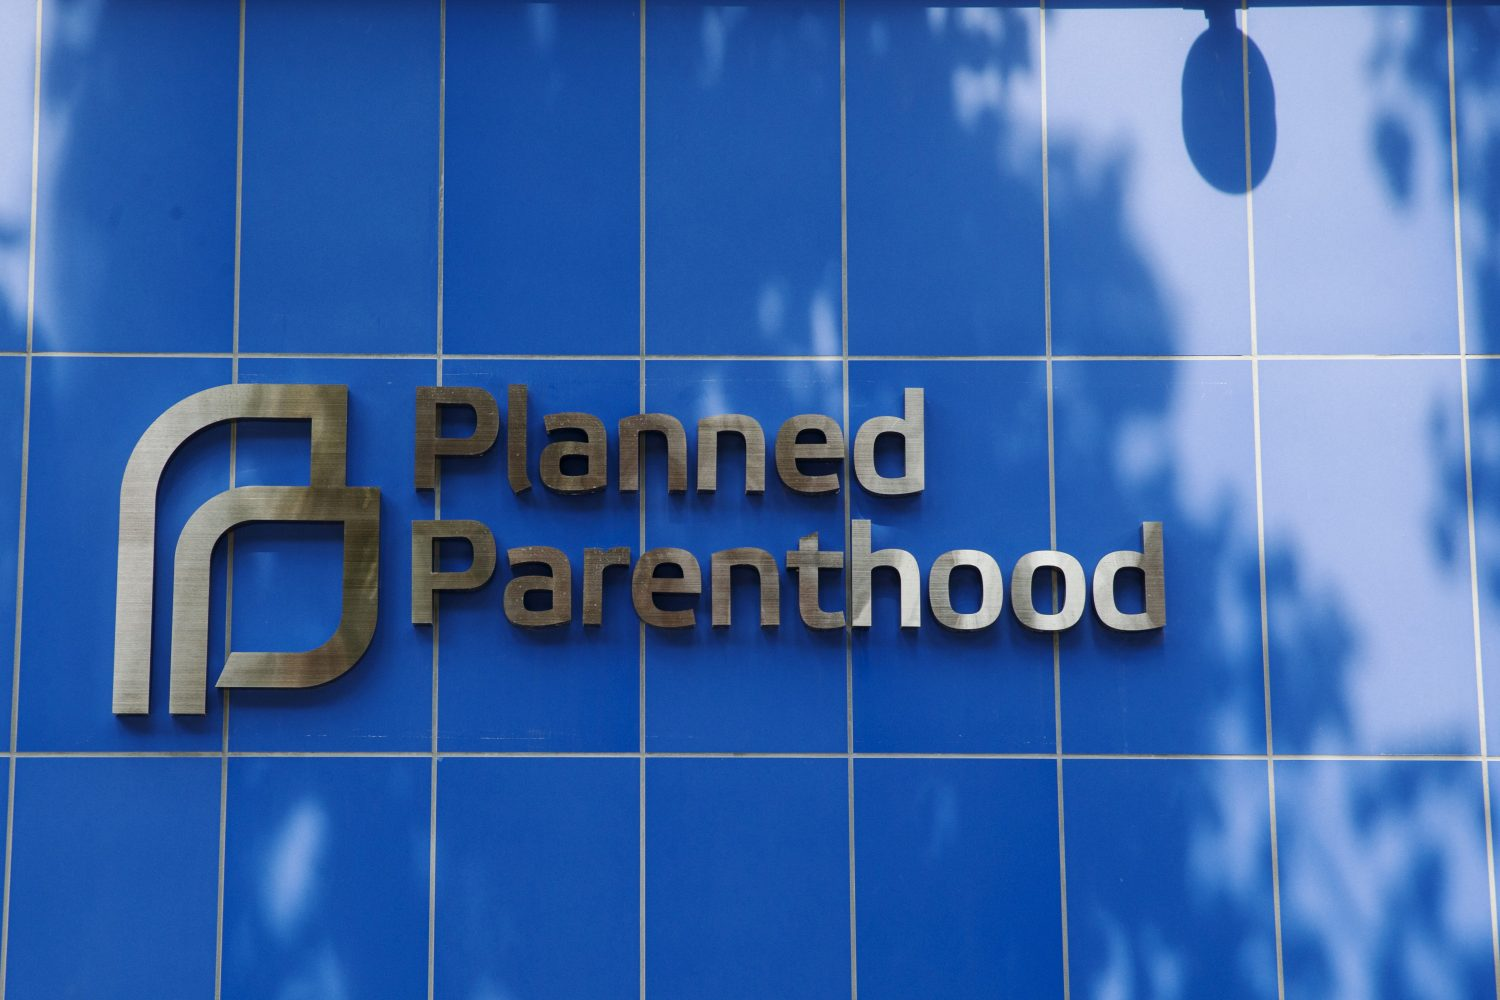 FILE PHOTO: A sign is pictured at the entrance to a Planned Parenthood building in New York August 31, 2015. REUTERS/Lucas Jackson